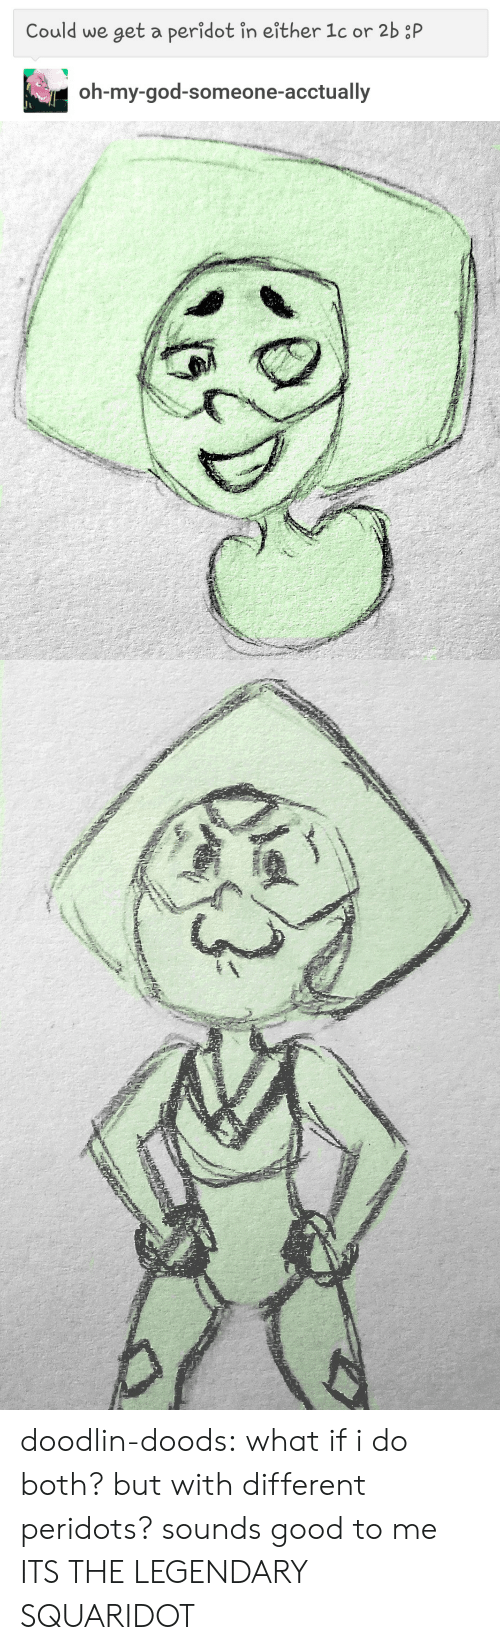 God, Oh My God, and Tumblr: Could we get a peridot in either 1c or 2b :P  oh-my-god-someone-acctually doodlin-doods:  what if i do both? but with different peridots? sounds good to me  ITS THE LEGENDARY SQUARIDOT